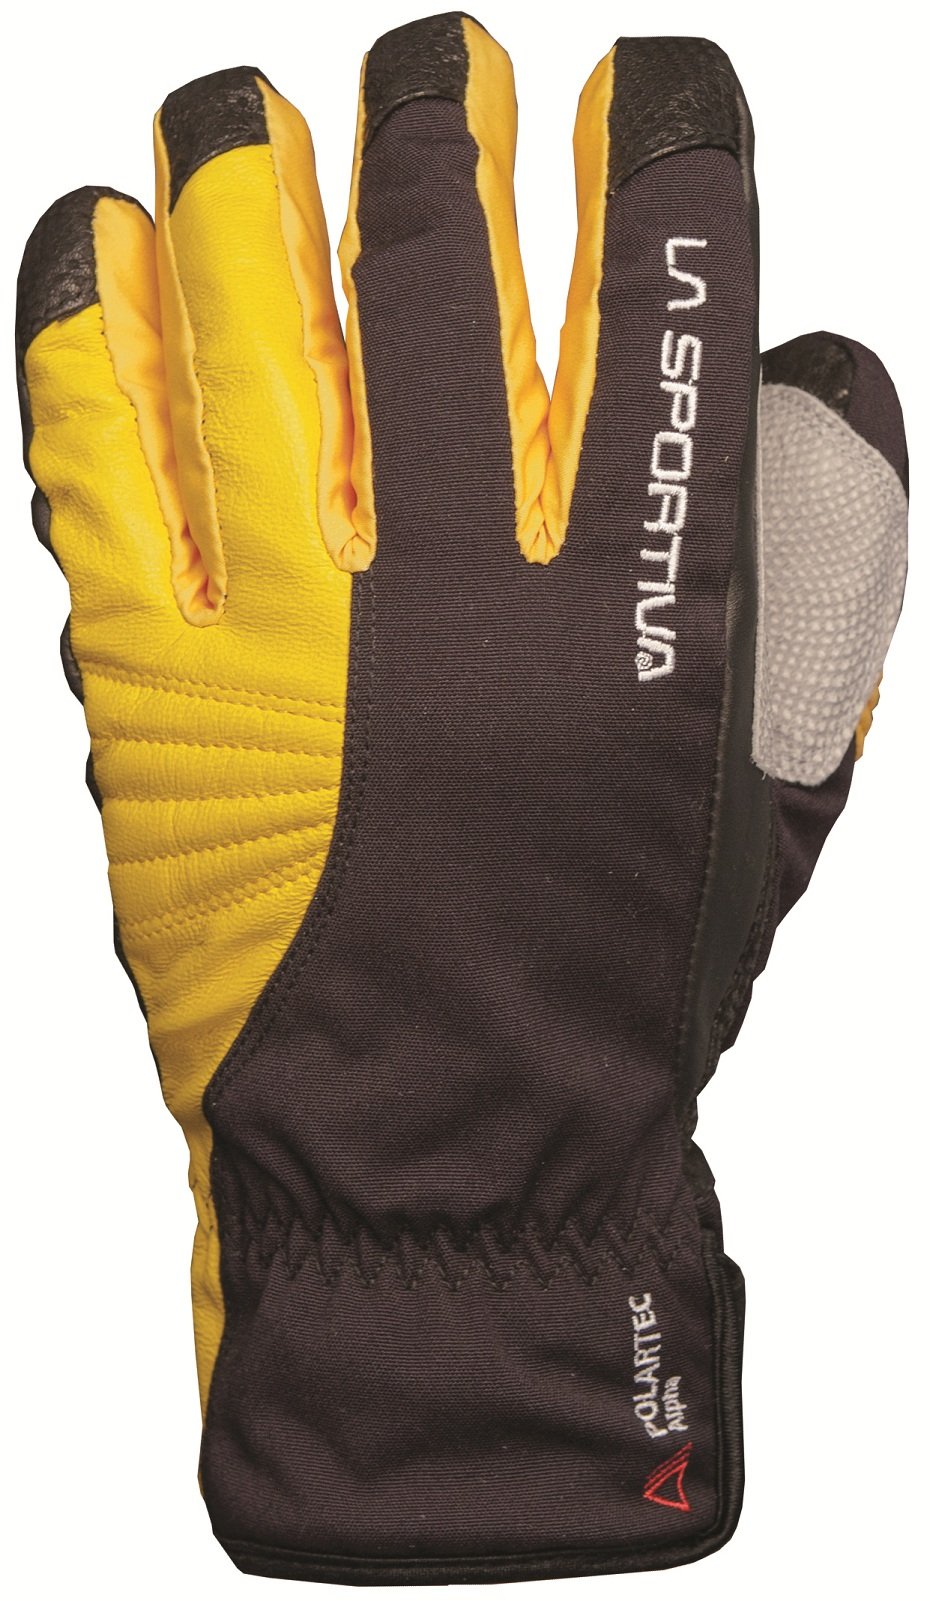 Pro-Tech 8 gloves. The most vulnerable area on a firefighter's hand is the knuckle. Pro-Tech 8's unique multi-layer knuckle guard system provides unmatched thermal protection and cut/puncture resistance.